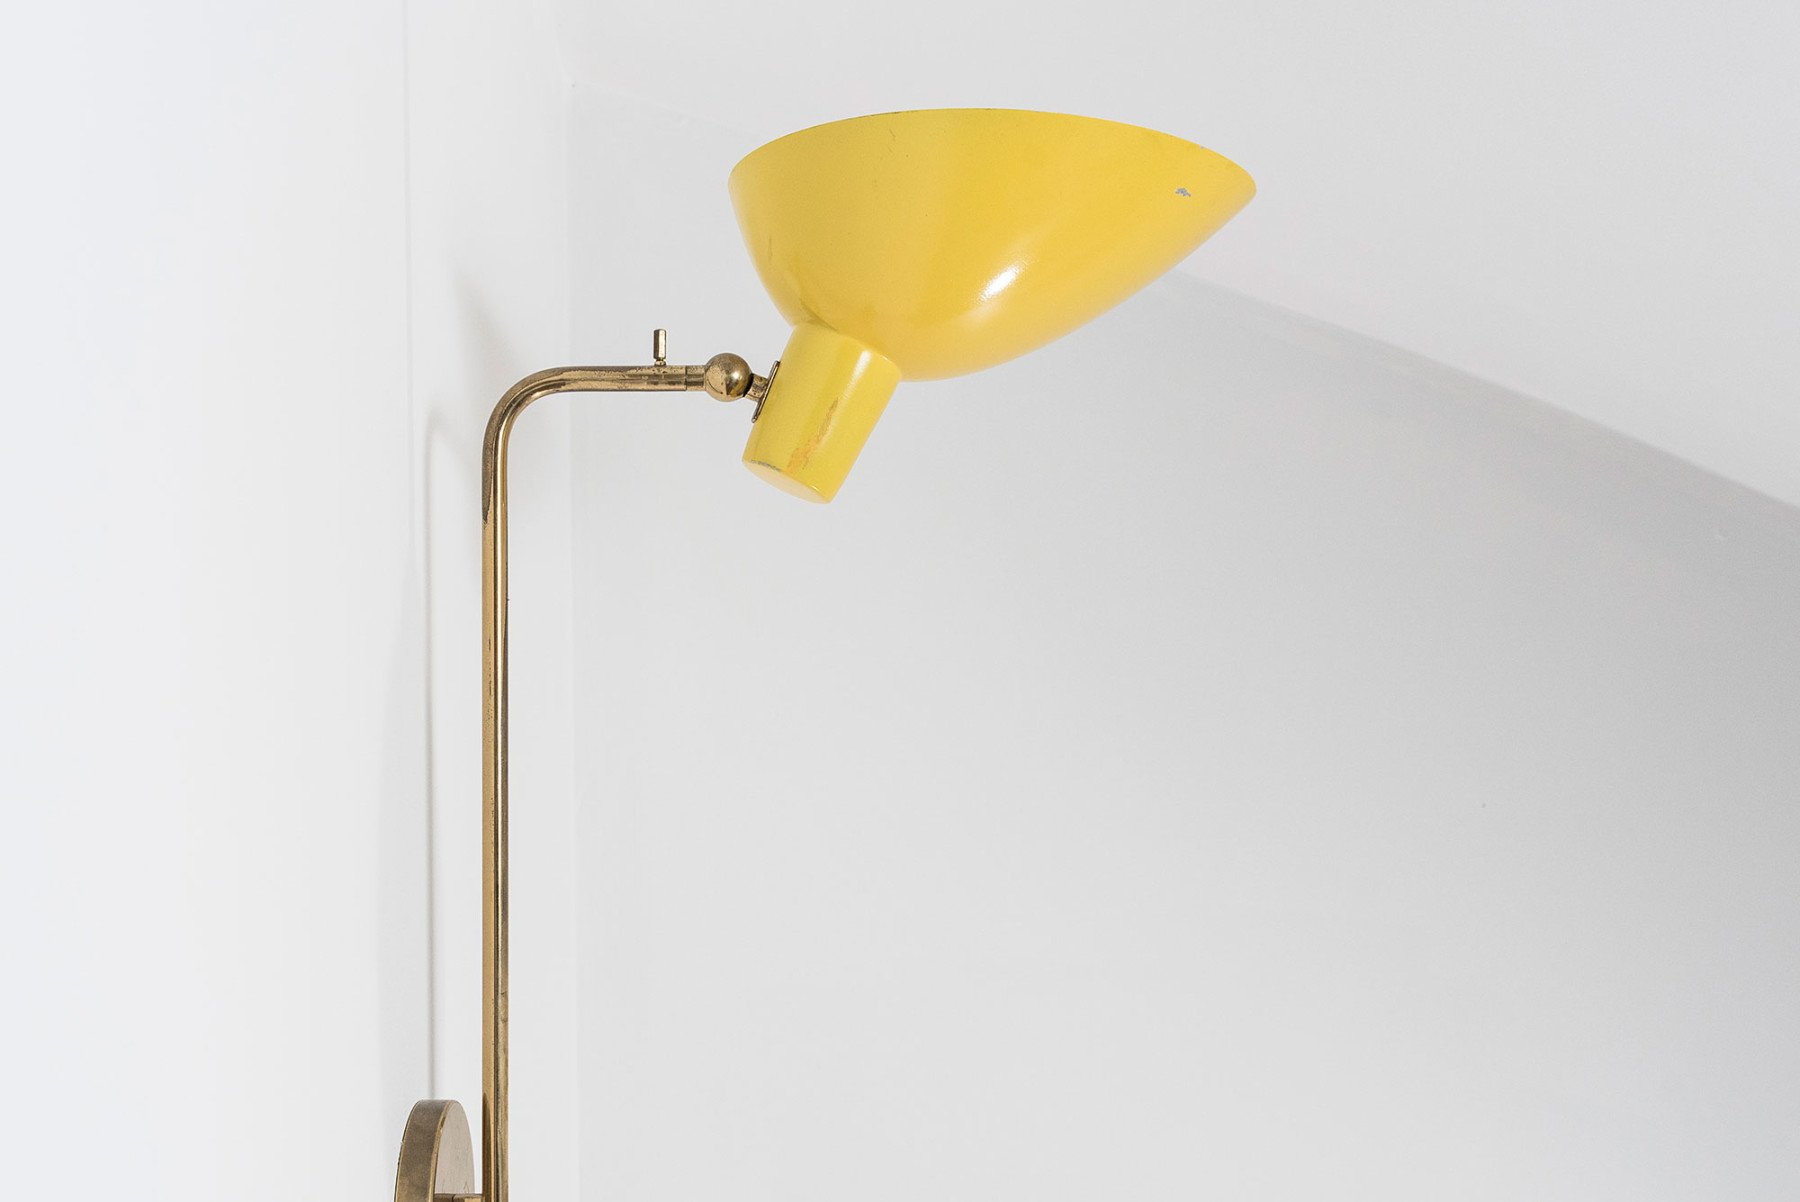 Gino Sarfatti and Vittoriano Viganò |   Wall light, model 199